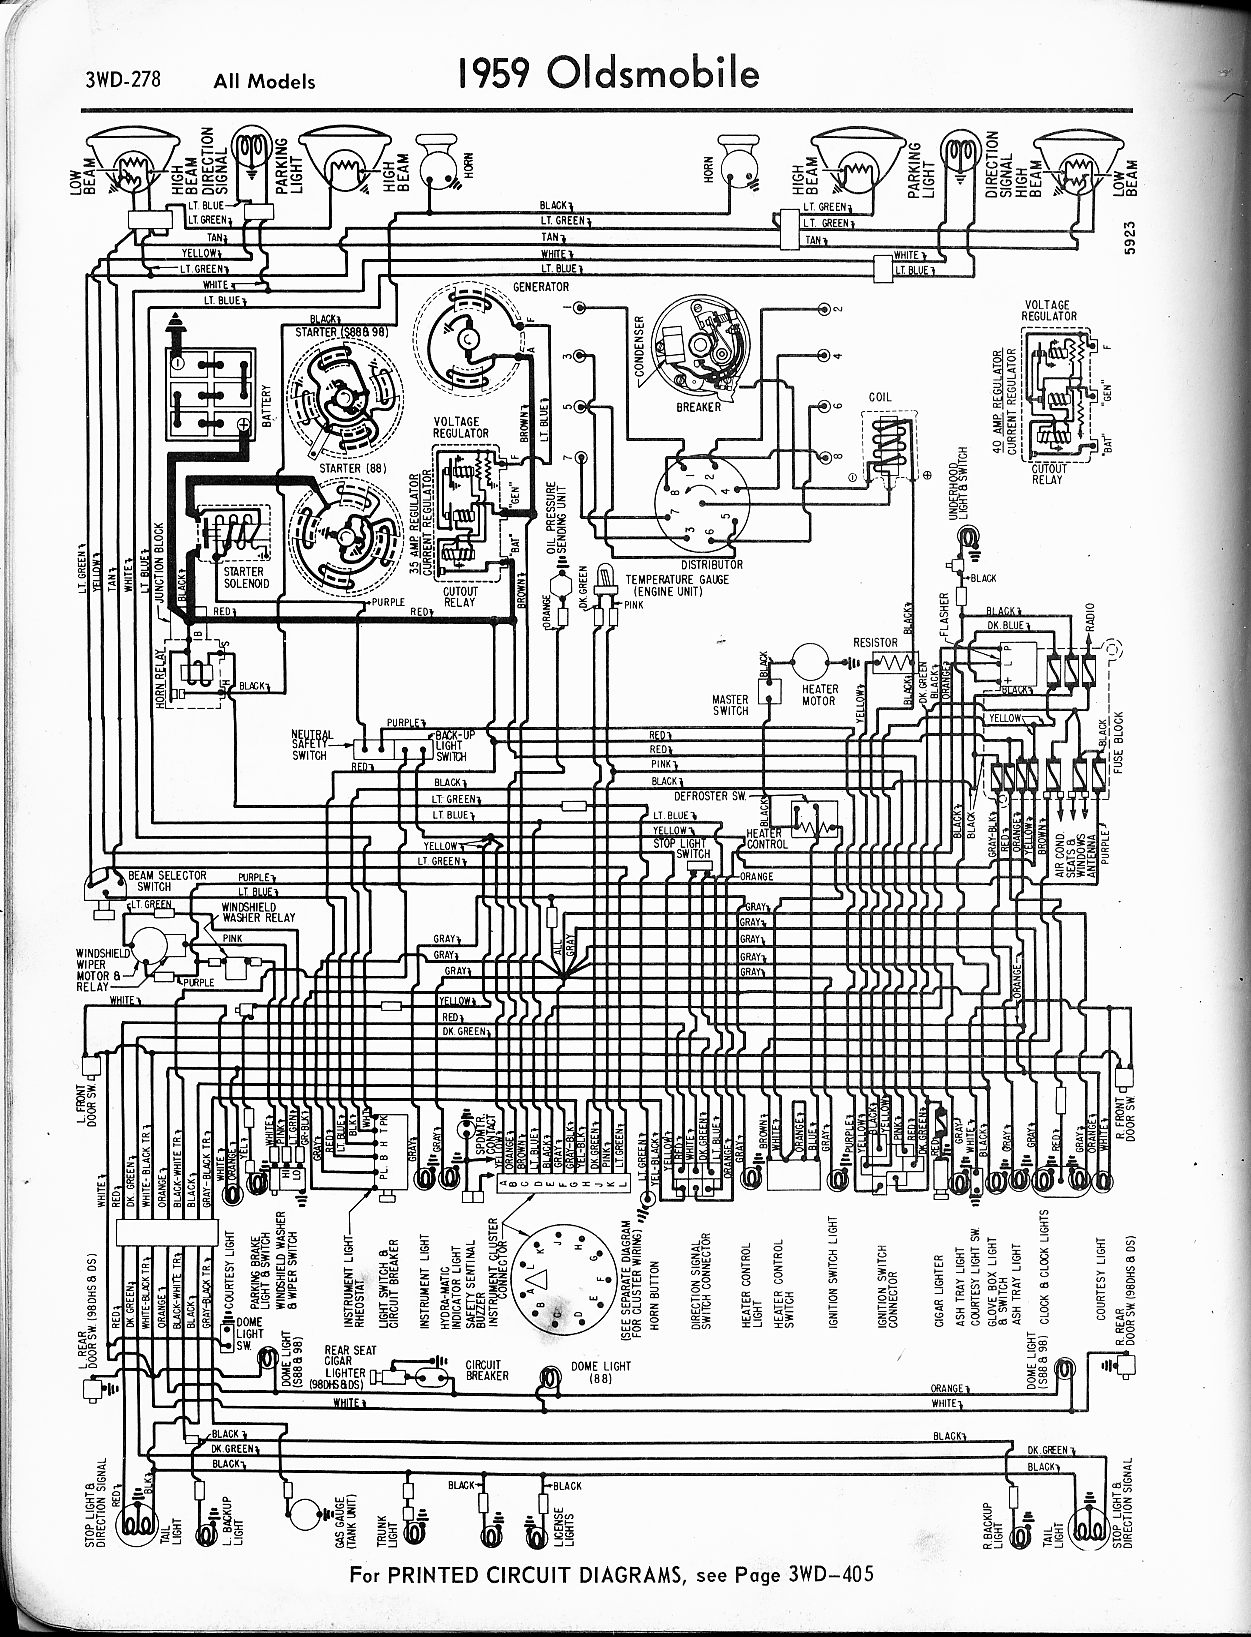 82 oldsmobile 98 regency wiring diagram oldsmobile wiring diagrams - the old car manual project